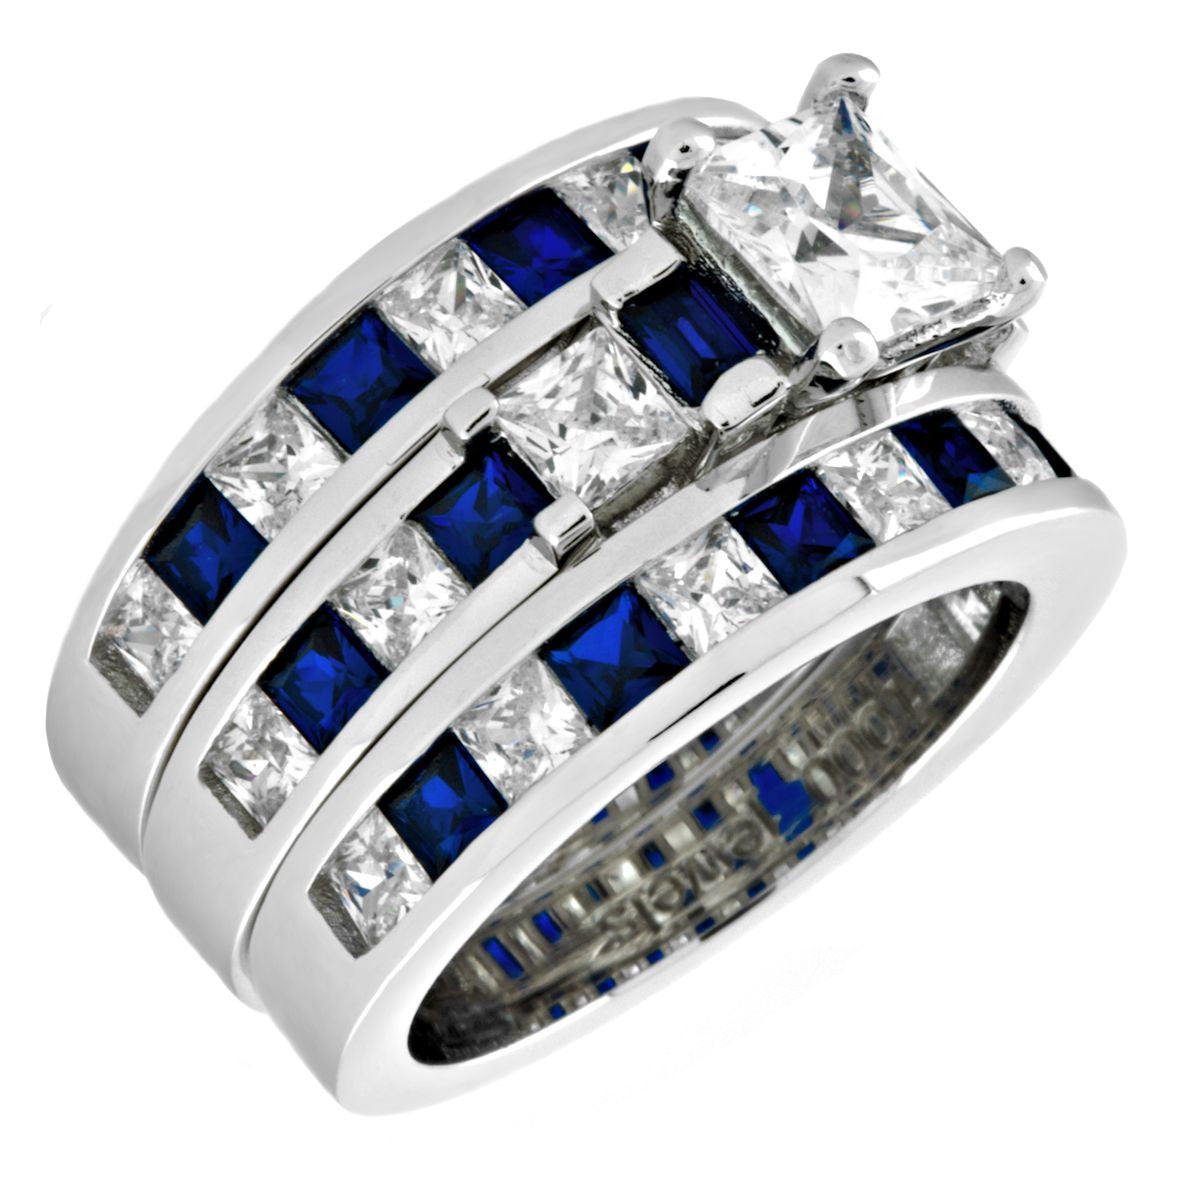 band cut ring wedding oval engagement sapphire antique diamond diamonds style set ooval